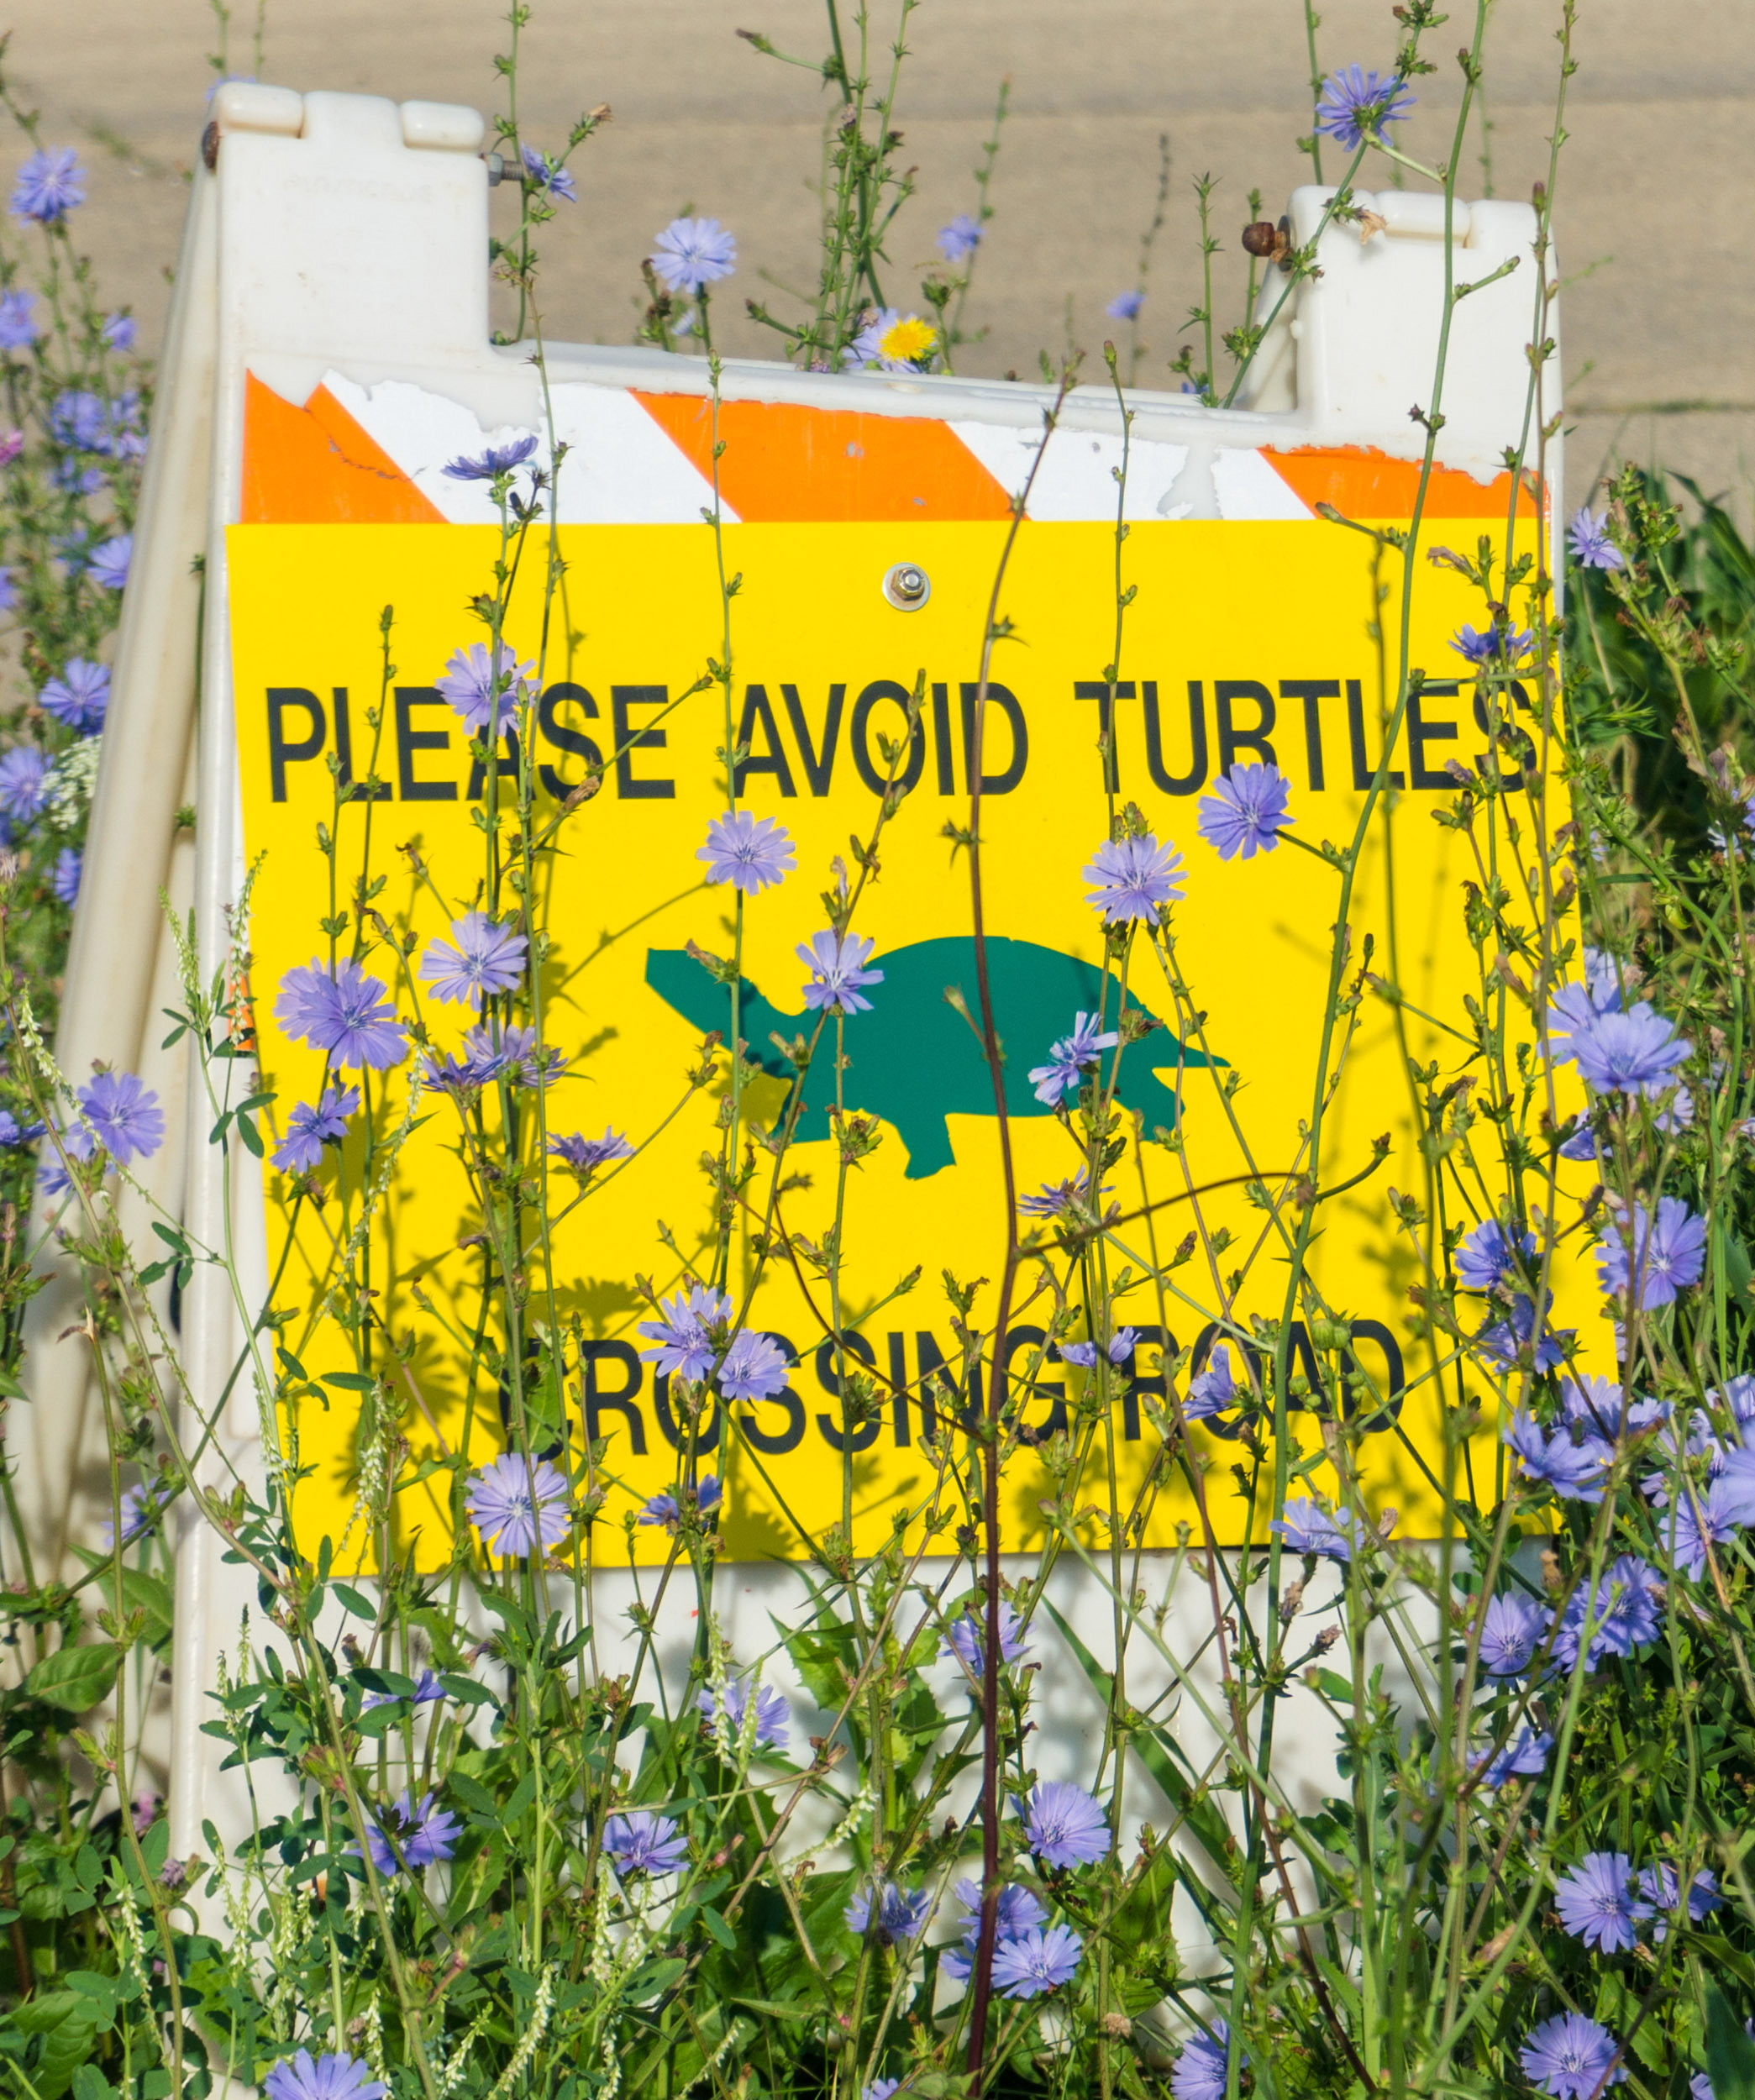 Chicory blooms the brightest in the morning, and it surrounds this turtle crossing sign at the Main Ring Road entrance at CZero. Photo: Elliott McCrory, AD